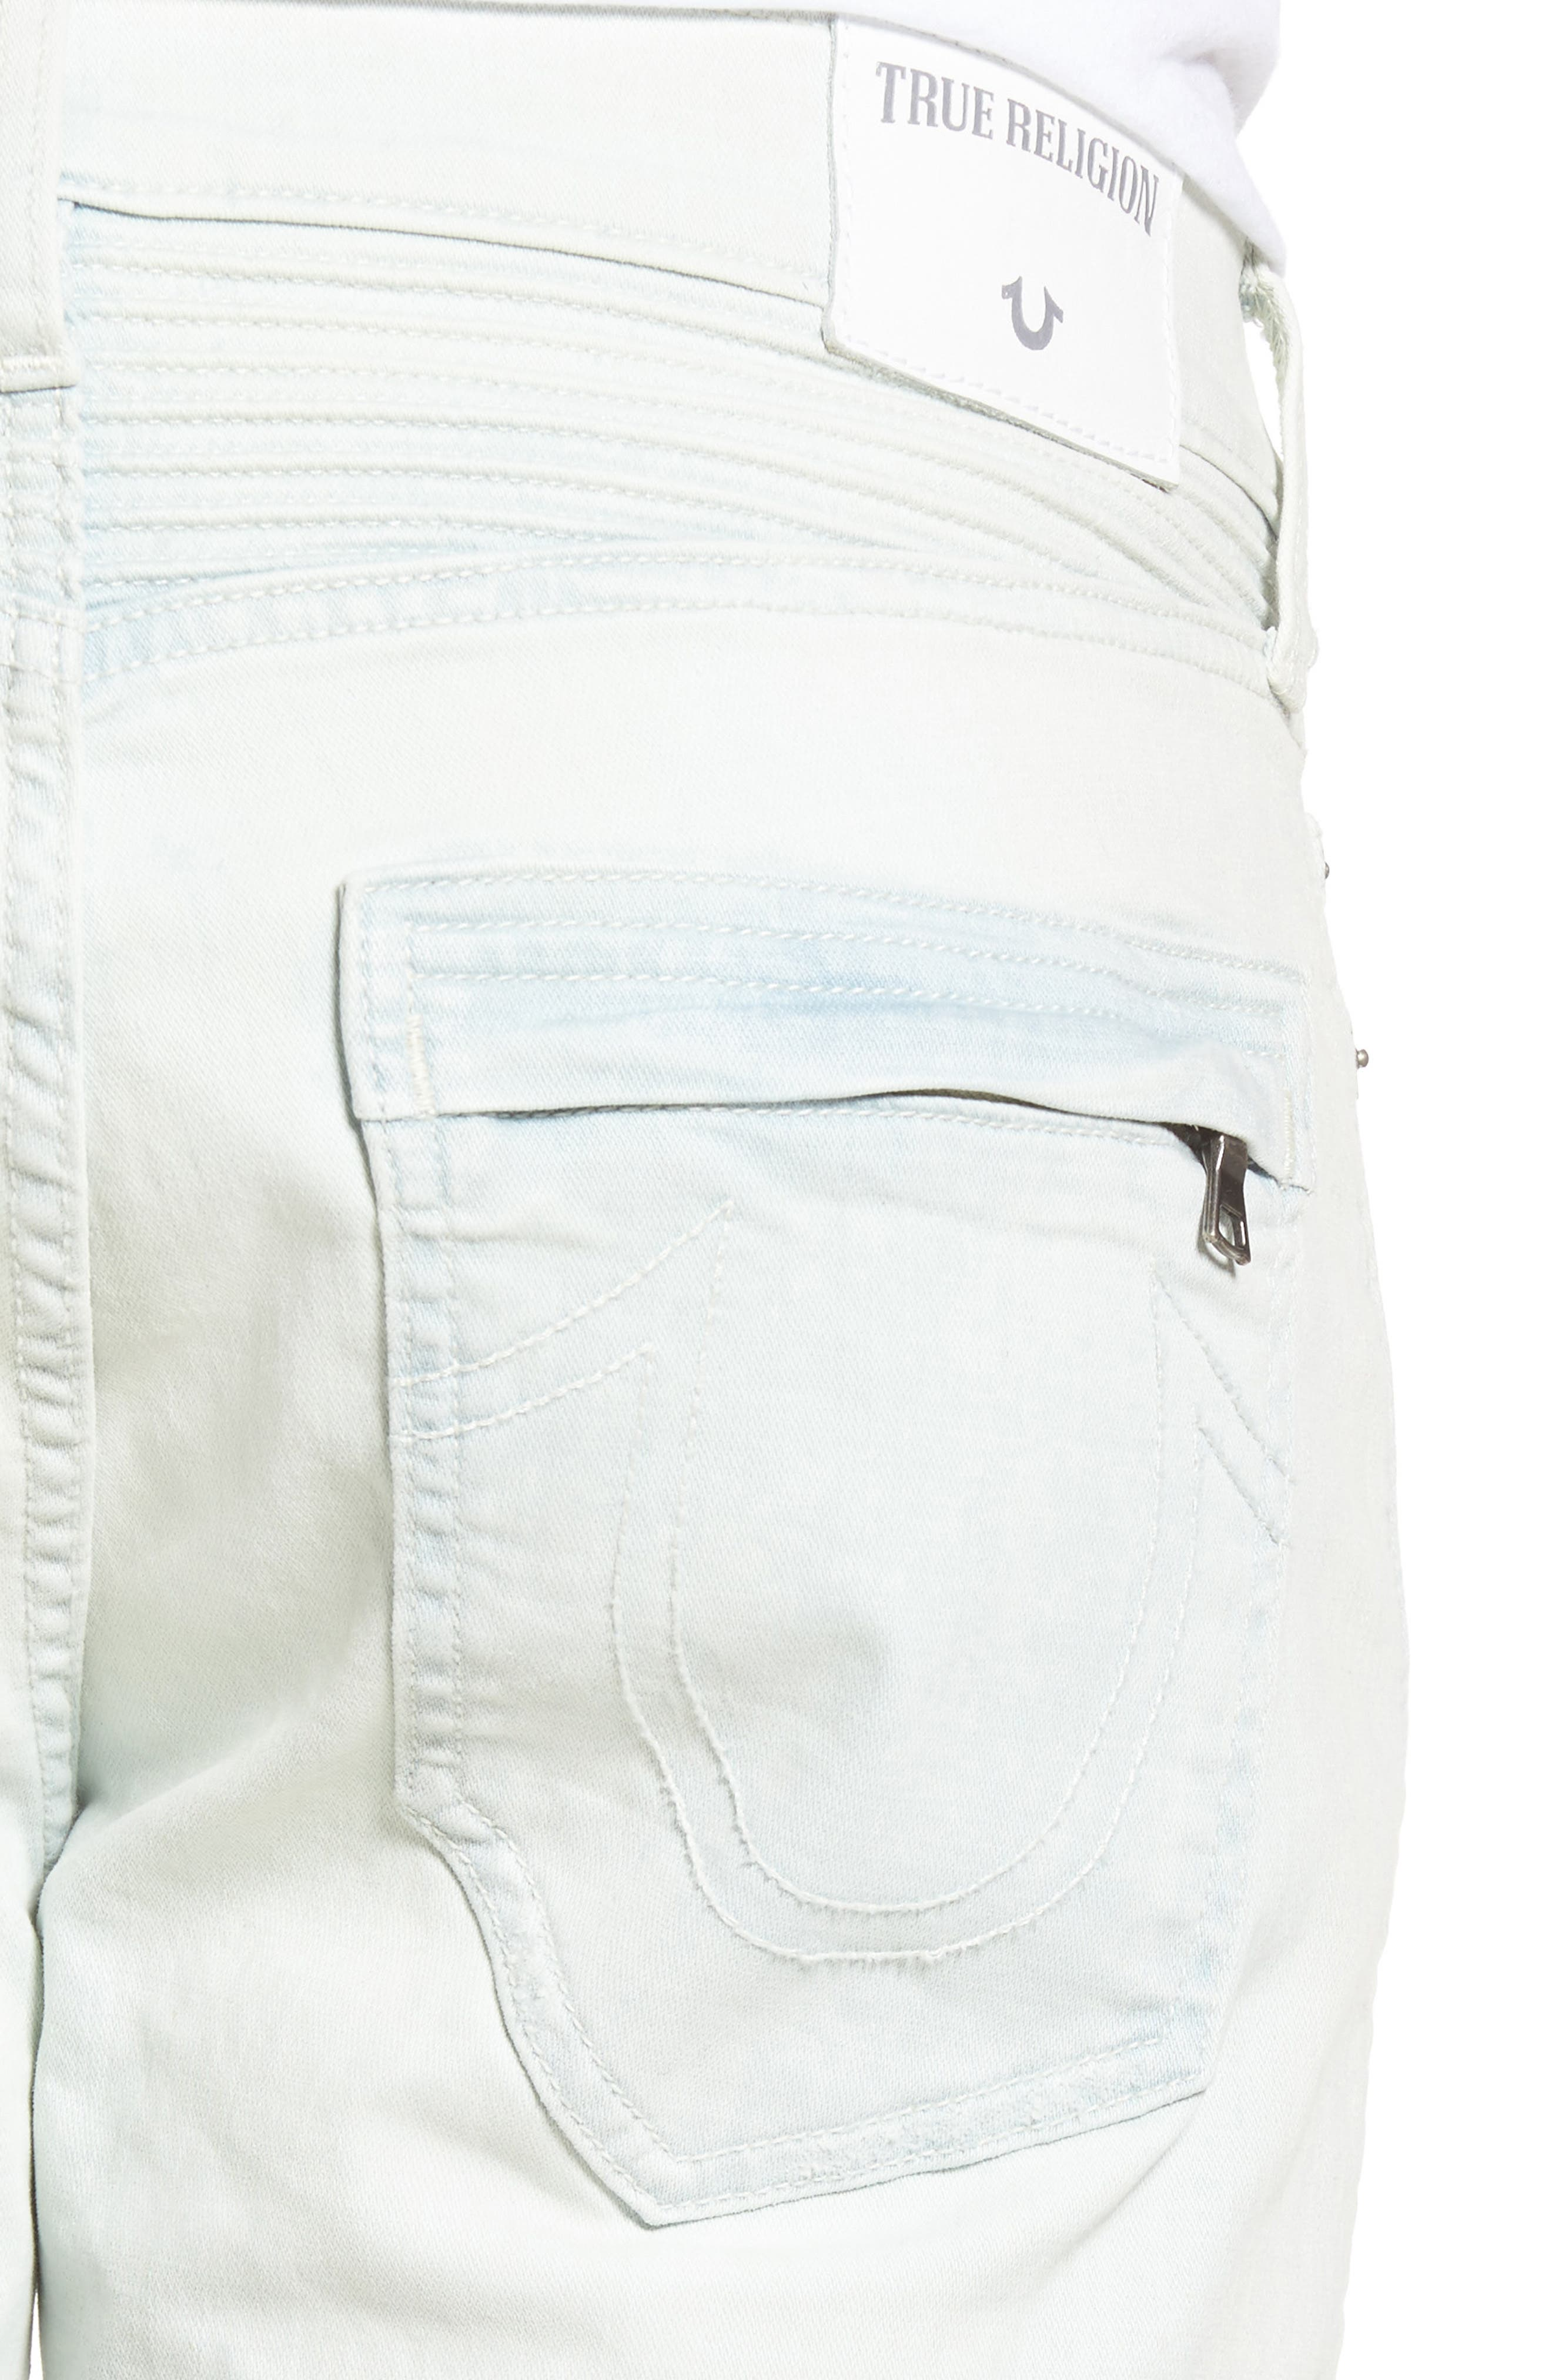 Rocco Skinny Fit Moto Jeans,                             Alternate thumbnail 4, color,                             401